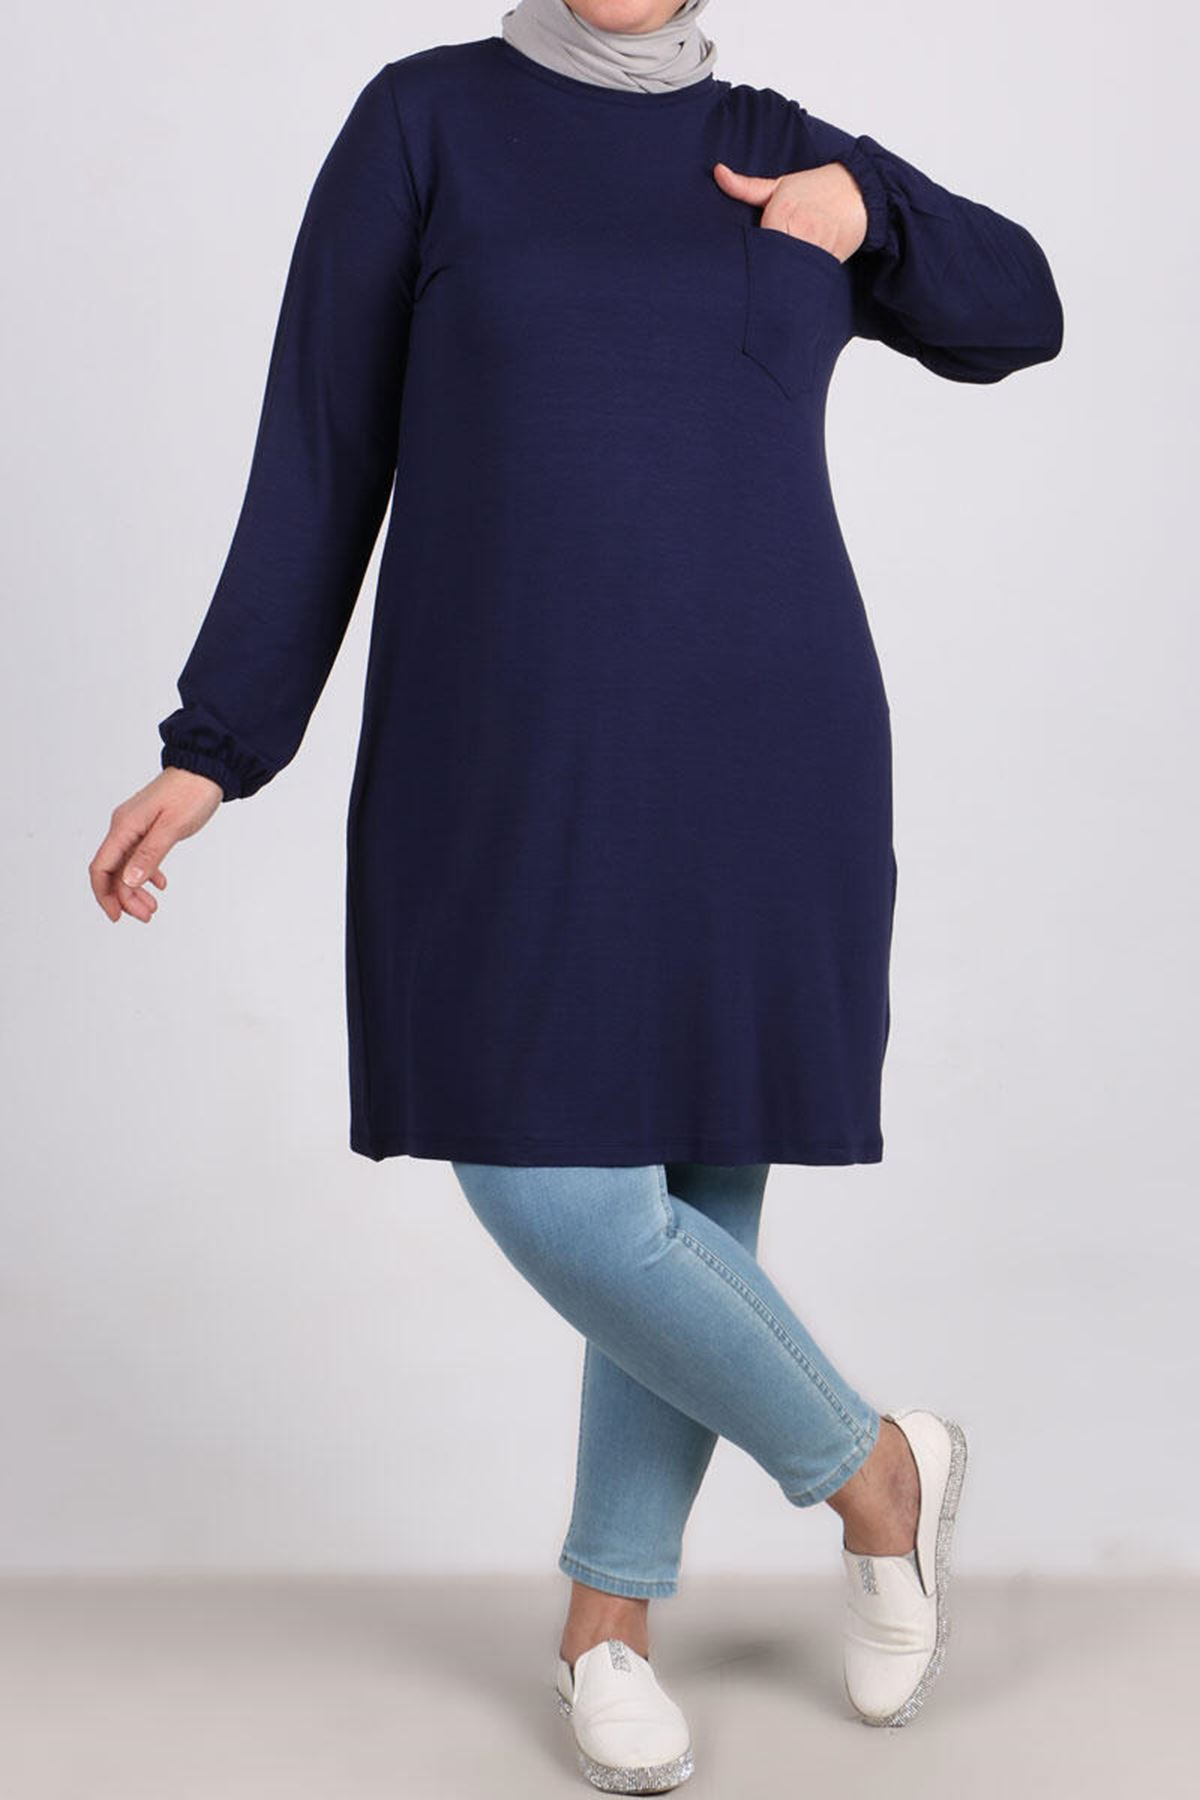 8252 Oversize Pocket Detailed Tunic- Navy Blue